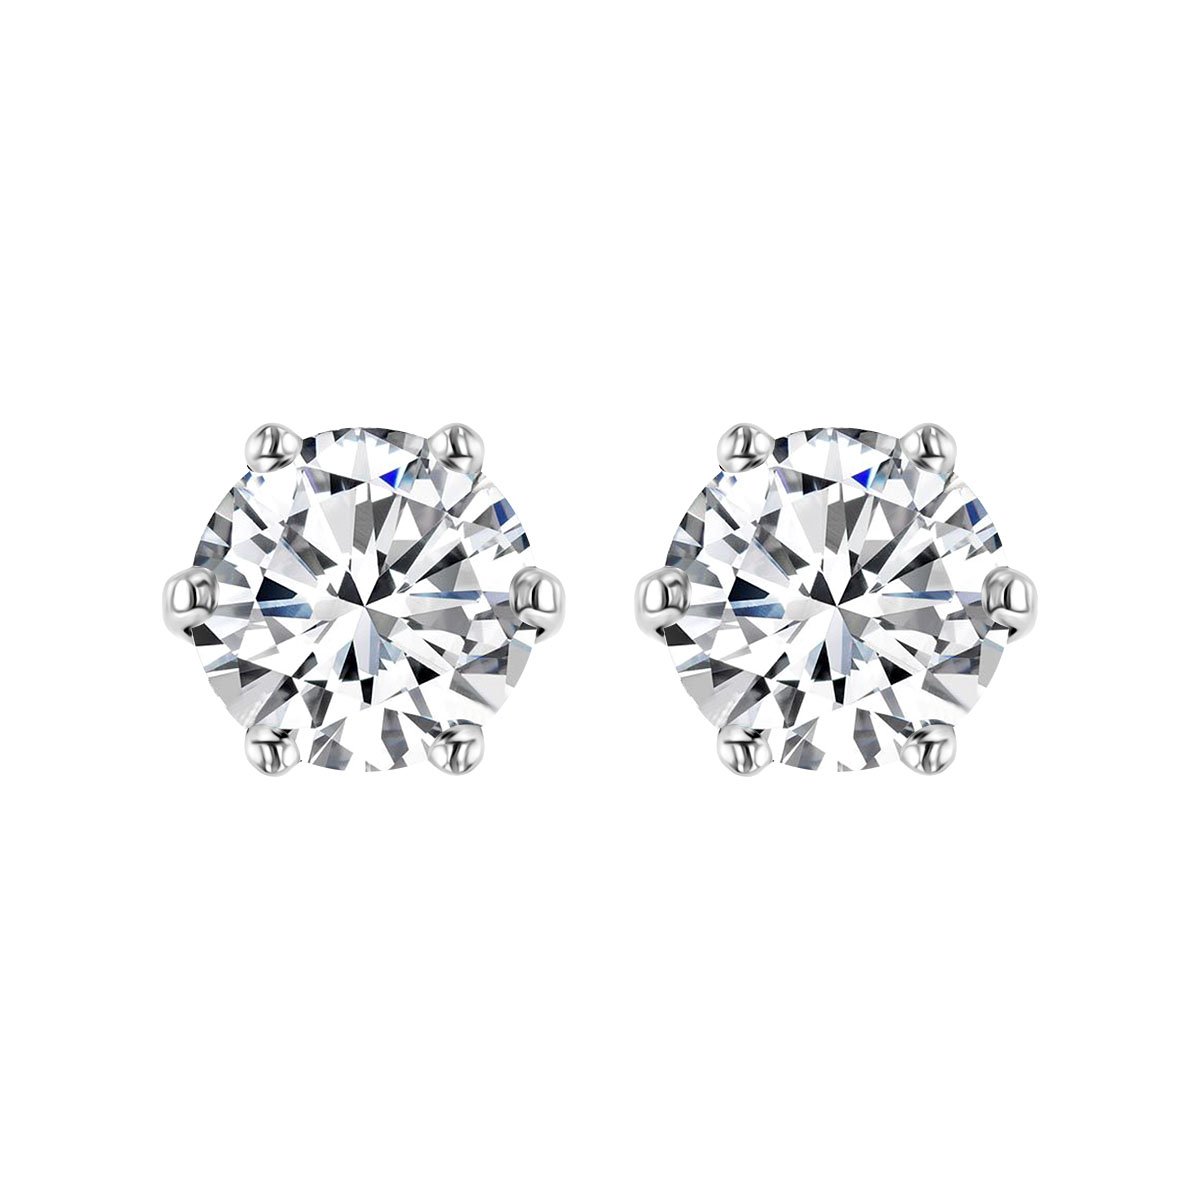 Radiance Collection 2.03ct Round Diamond 6 Claw Stud Earrings | 18K White Gold